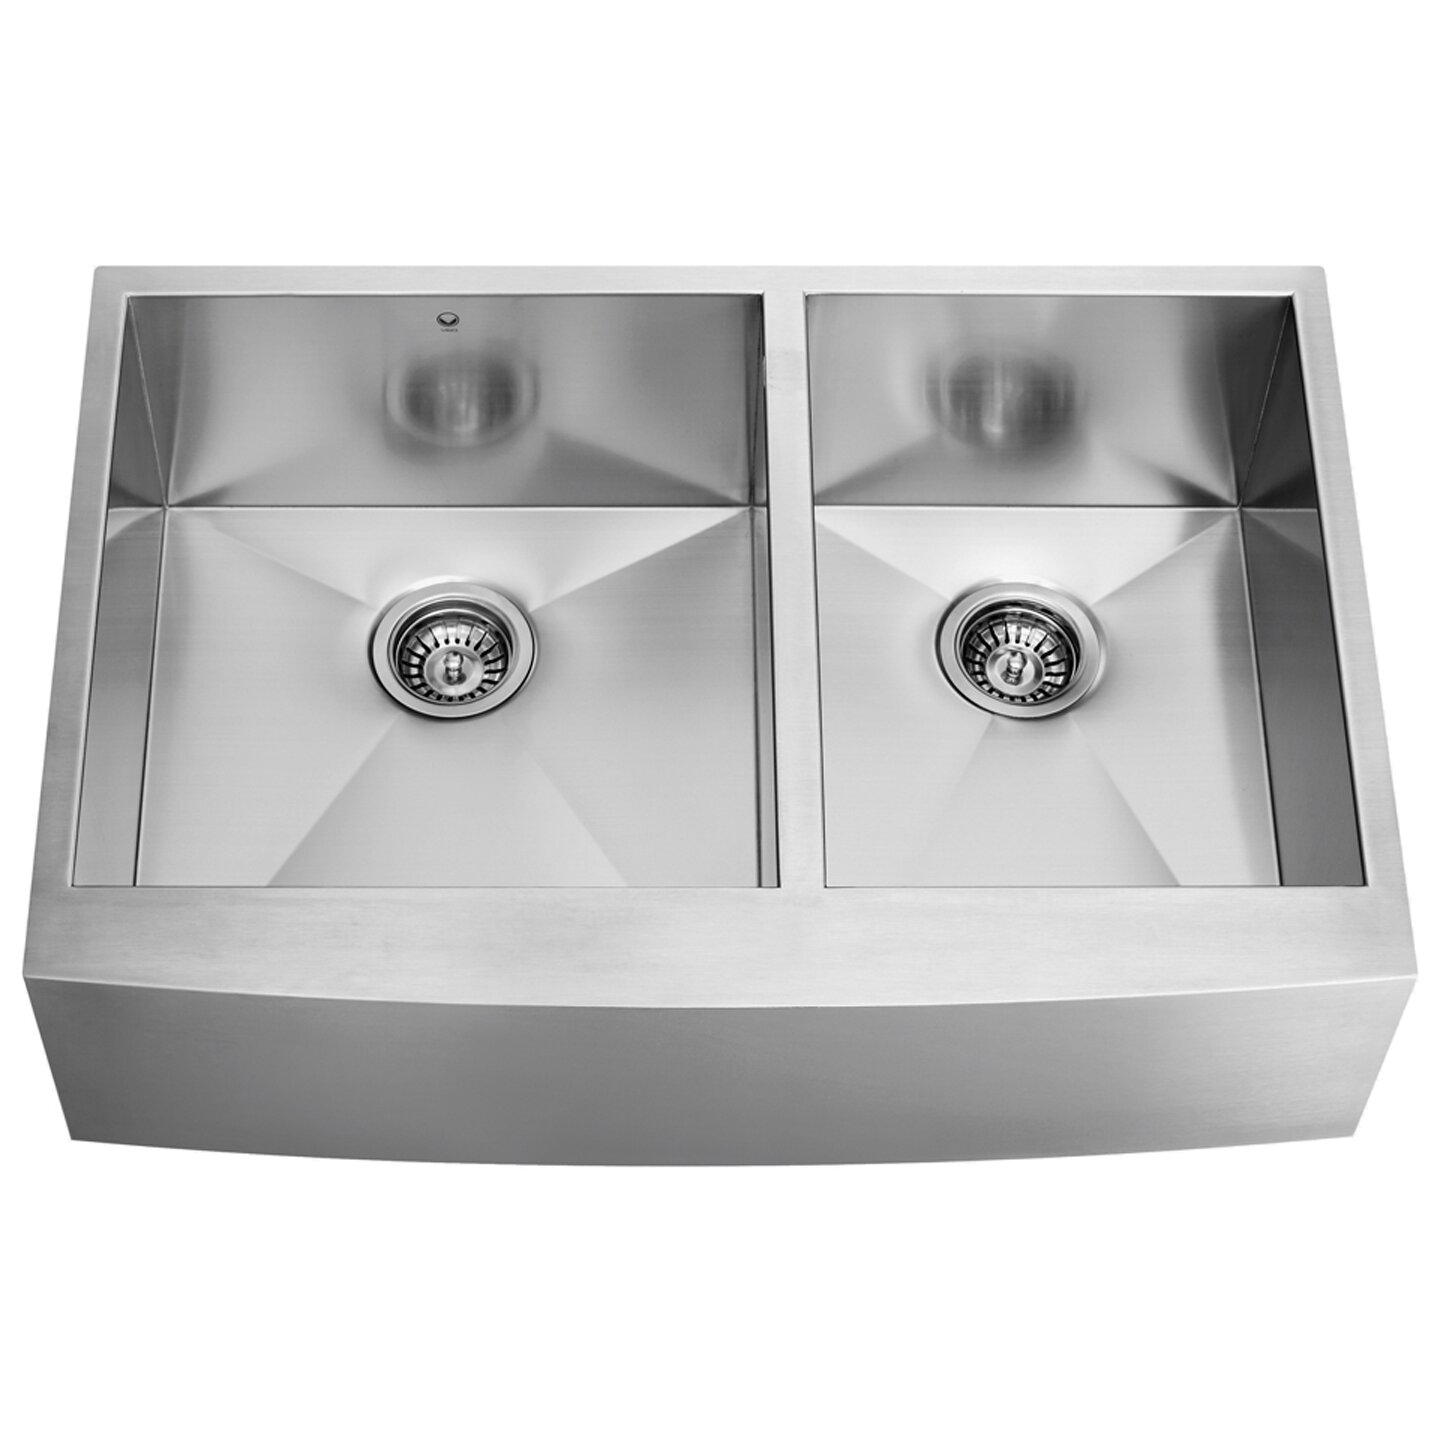 60 40 kitchen sink